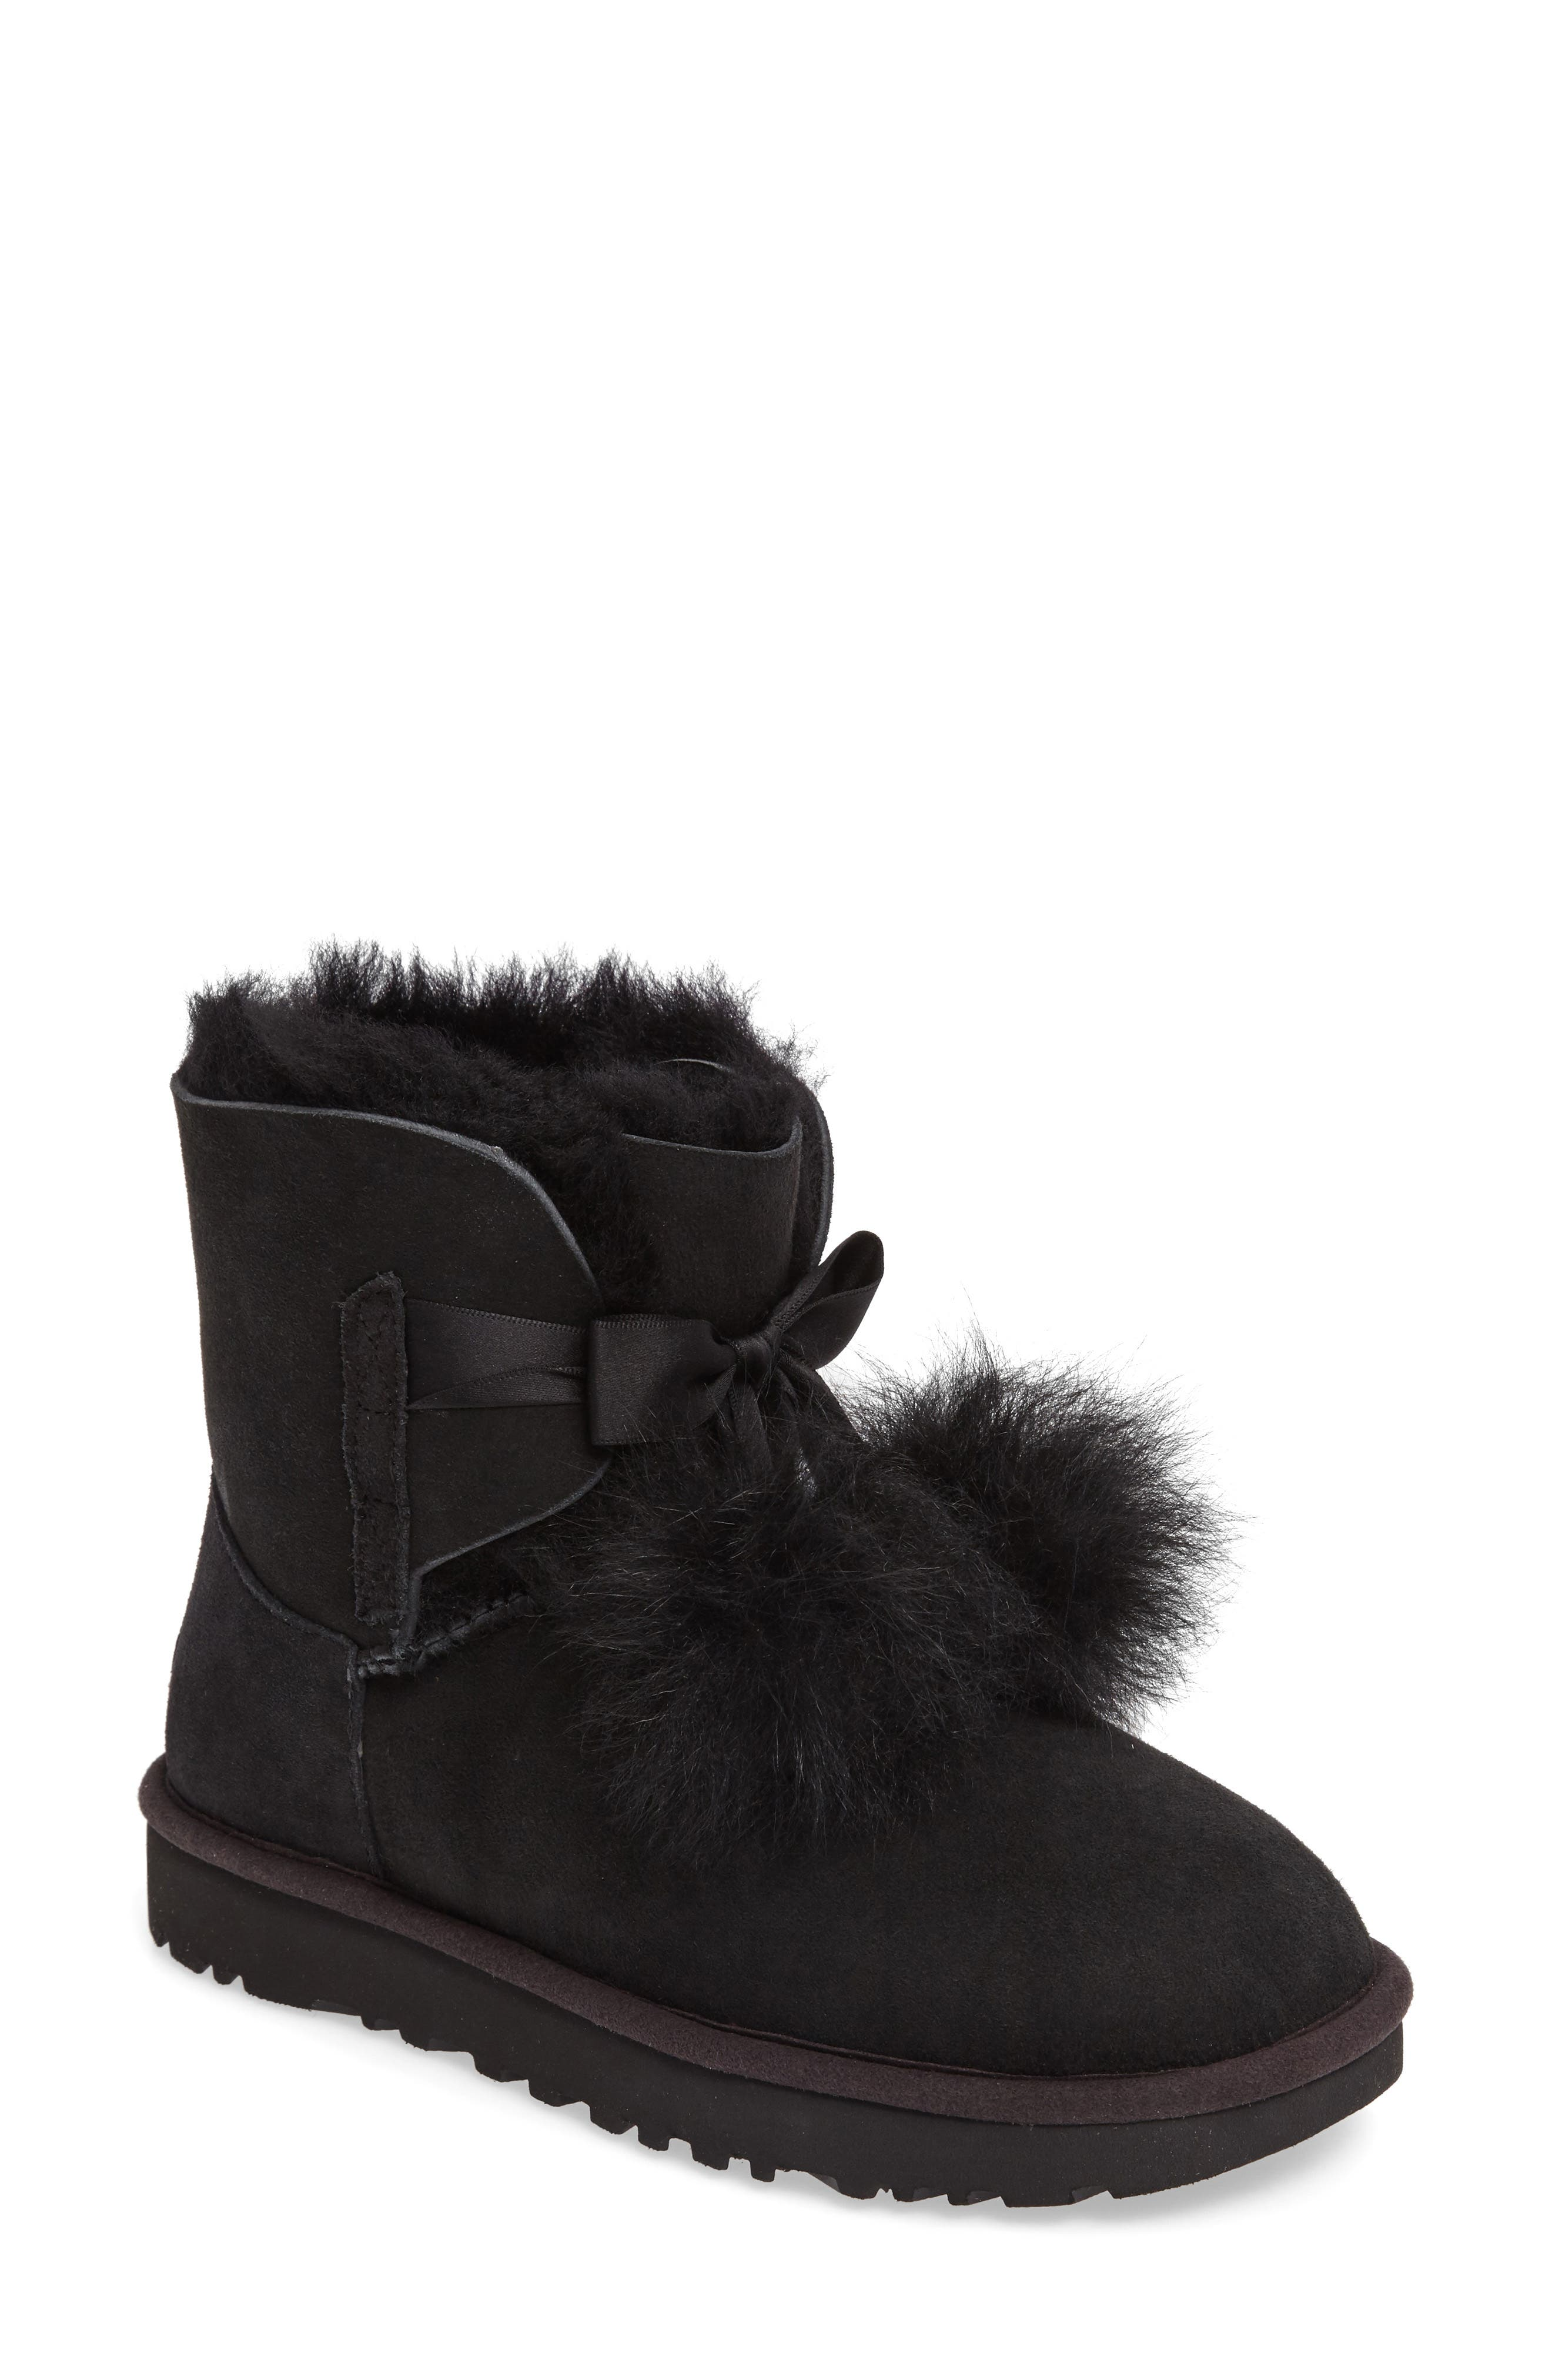 Gita Genuine Shearling Boot,                             Main thumbnail 1, color,                             Black Suede